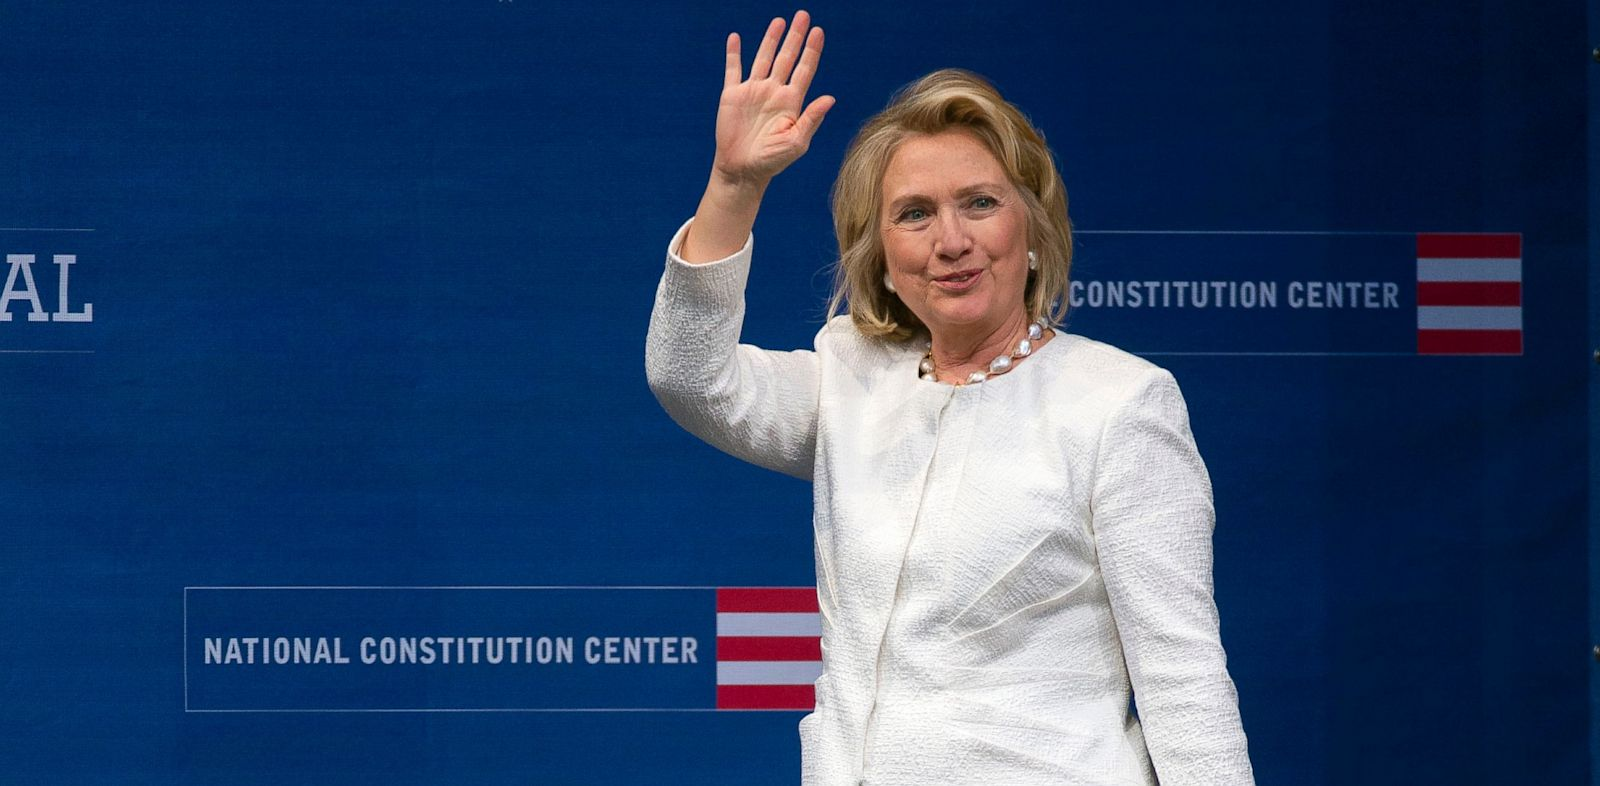 PHOTO: Former Secretary of State Hillary Rodham Clinton waves as she arrives to receive the Liberty Medal during a ceremony at the National Constitution Center, Tuesday, Sept. 10, 2013, in Philadelphia.